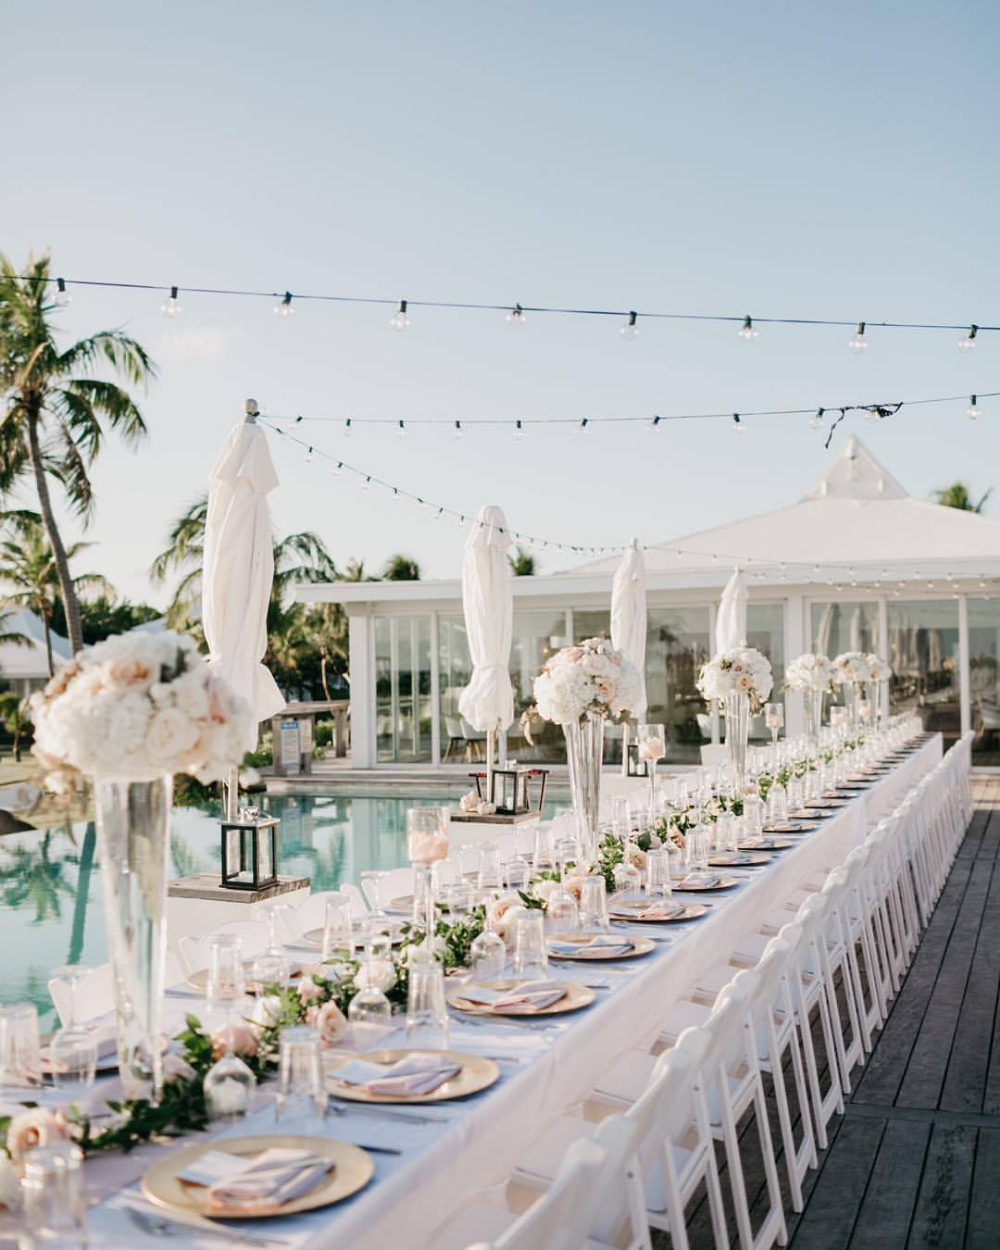 Pin On Chic Bahamas Weddings Bahamas Weddings Planners